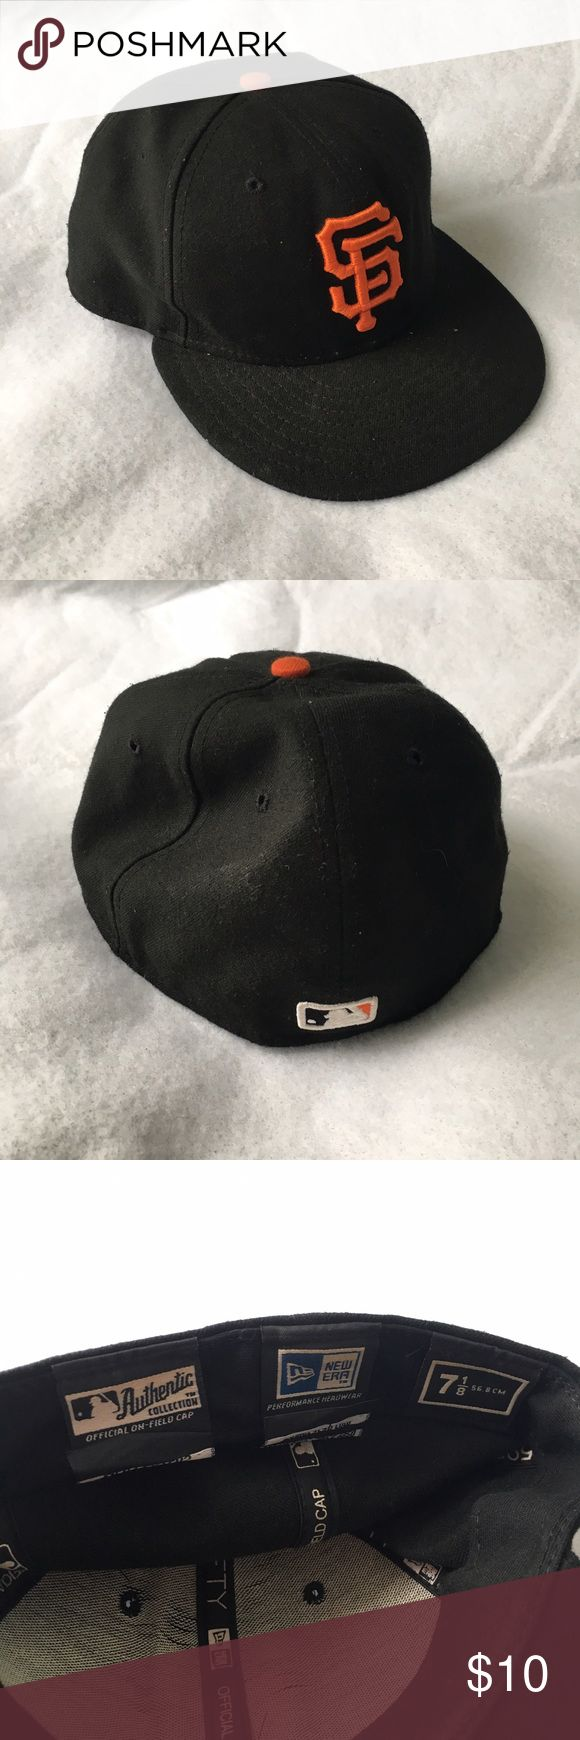 San Francisco Baseball Cap Used baseball cap. Got this at an Asher Roth concert when he threw it into the crowd (so it was his hat). New Era Accessories Hats